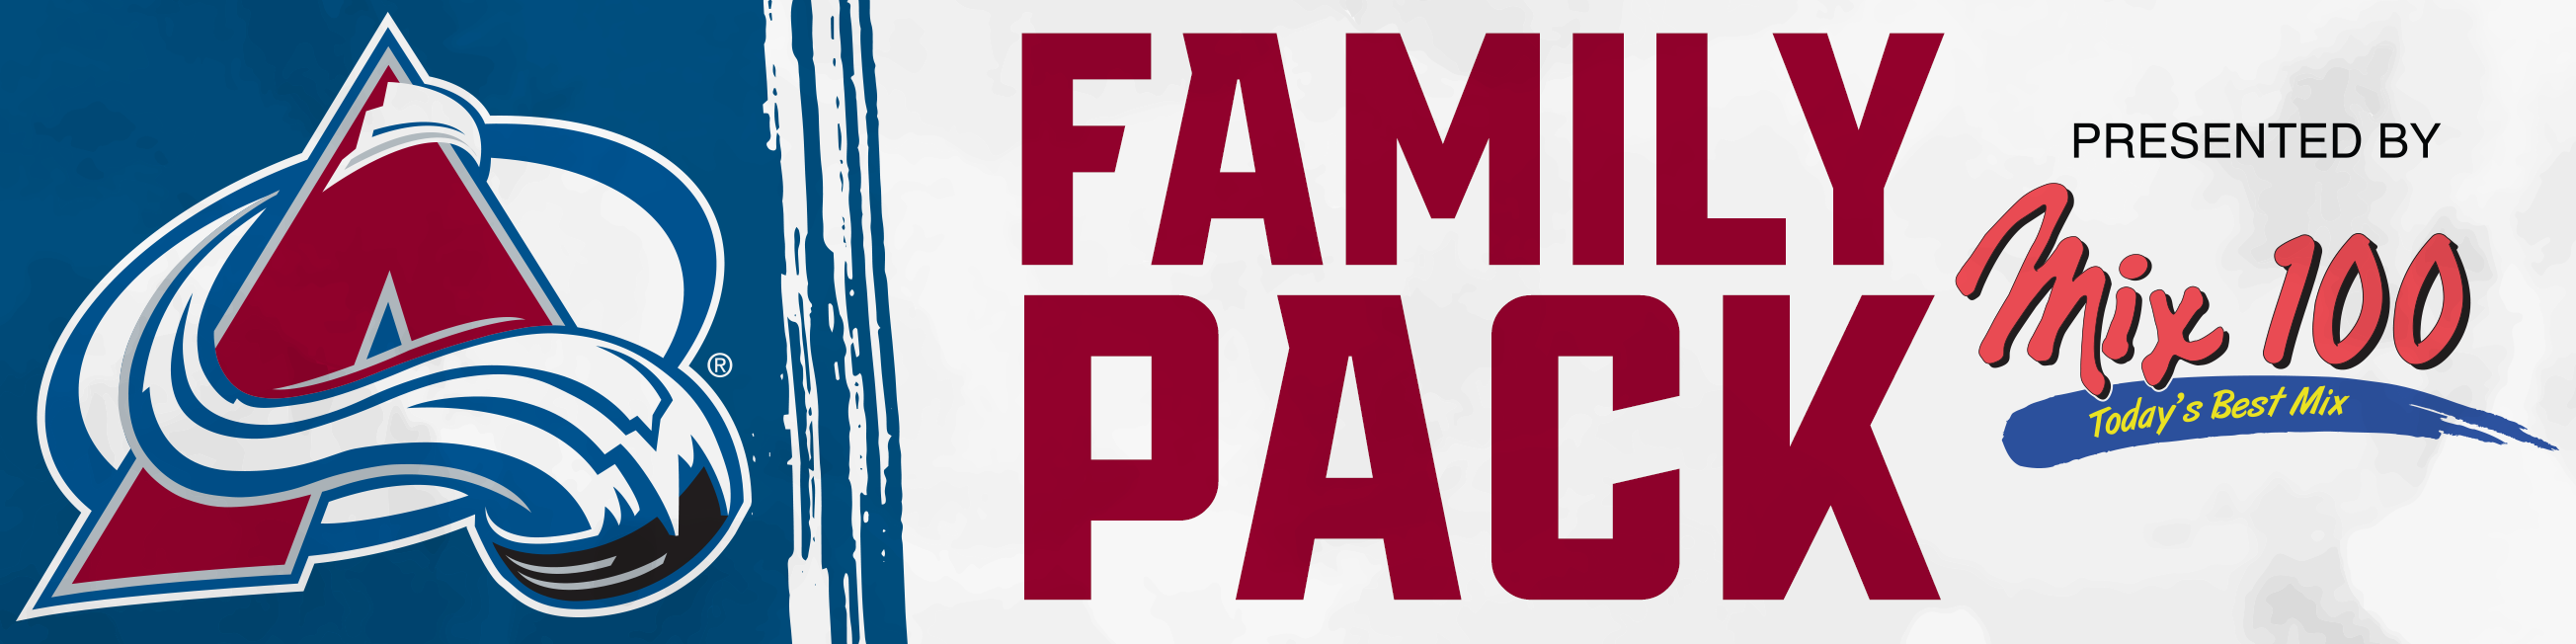 Avalanche Family Packs presented by MIX 100